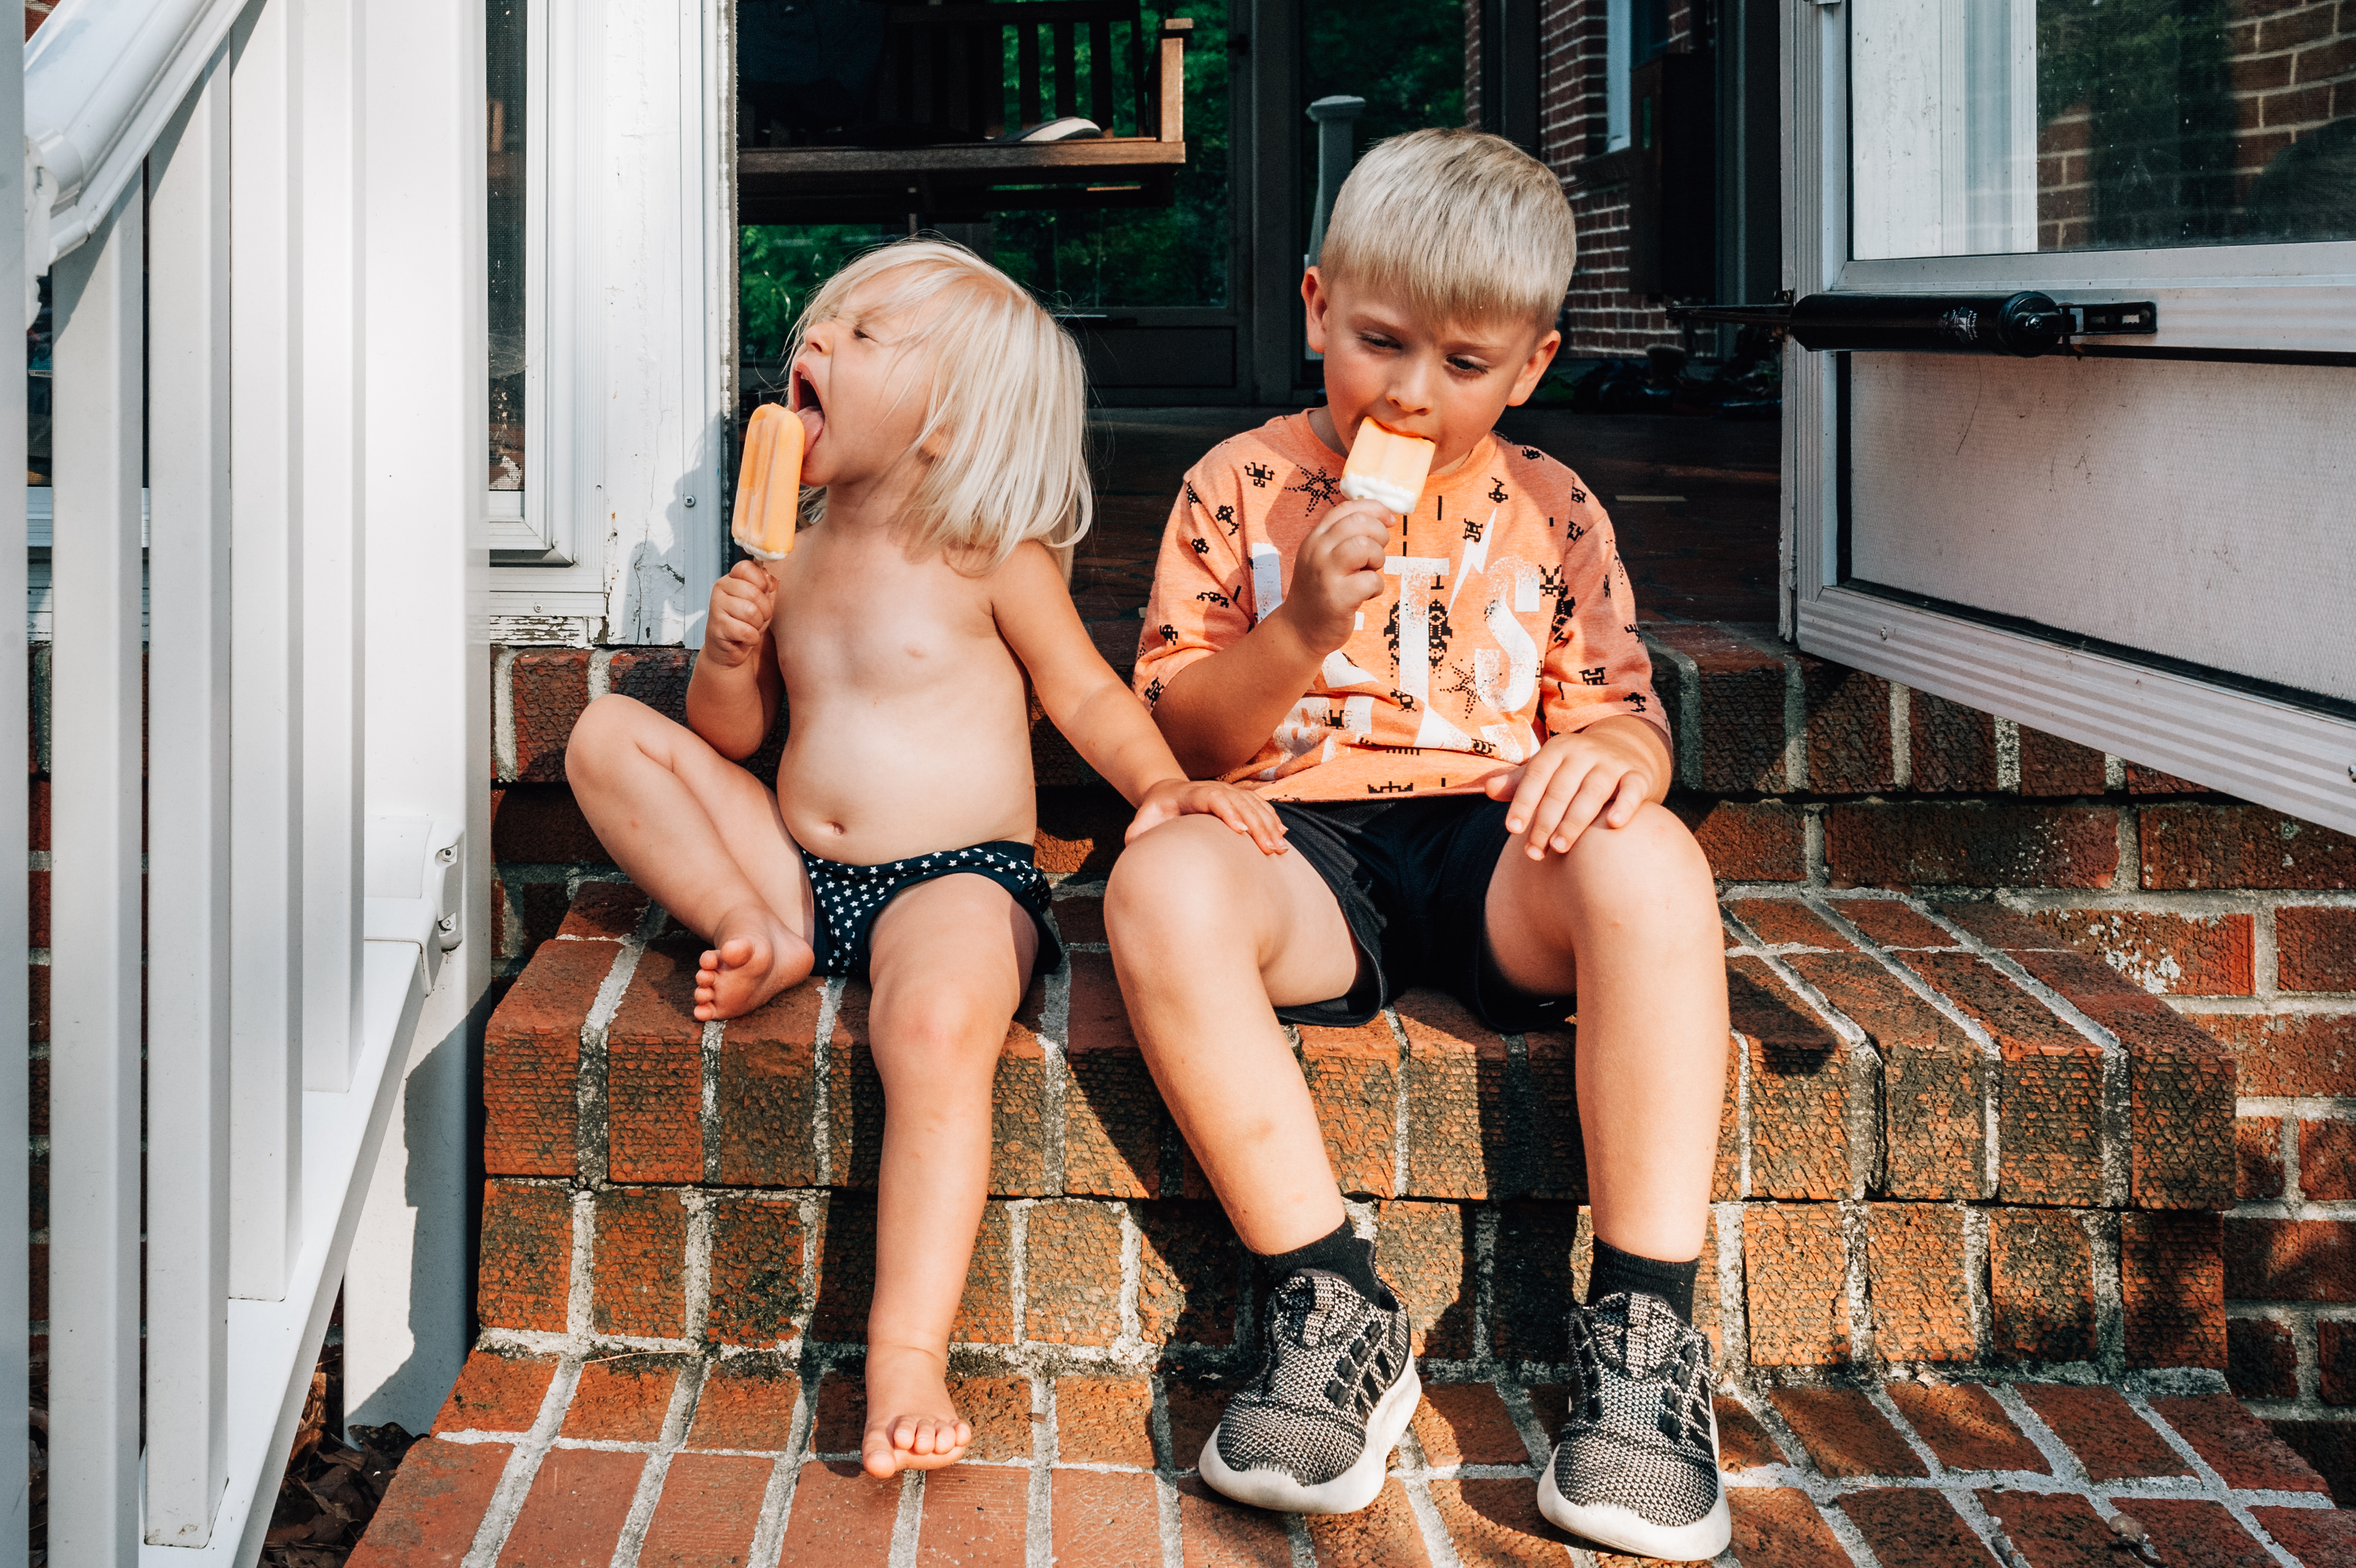 kids sitting on steps eating ice cream